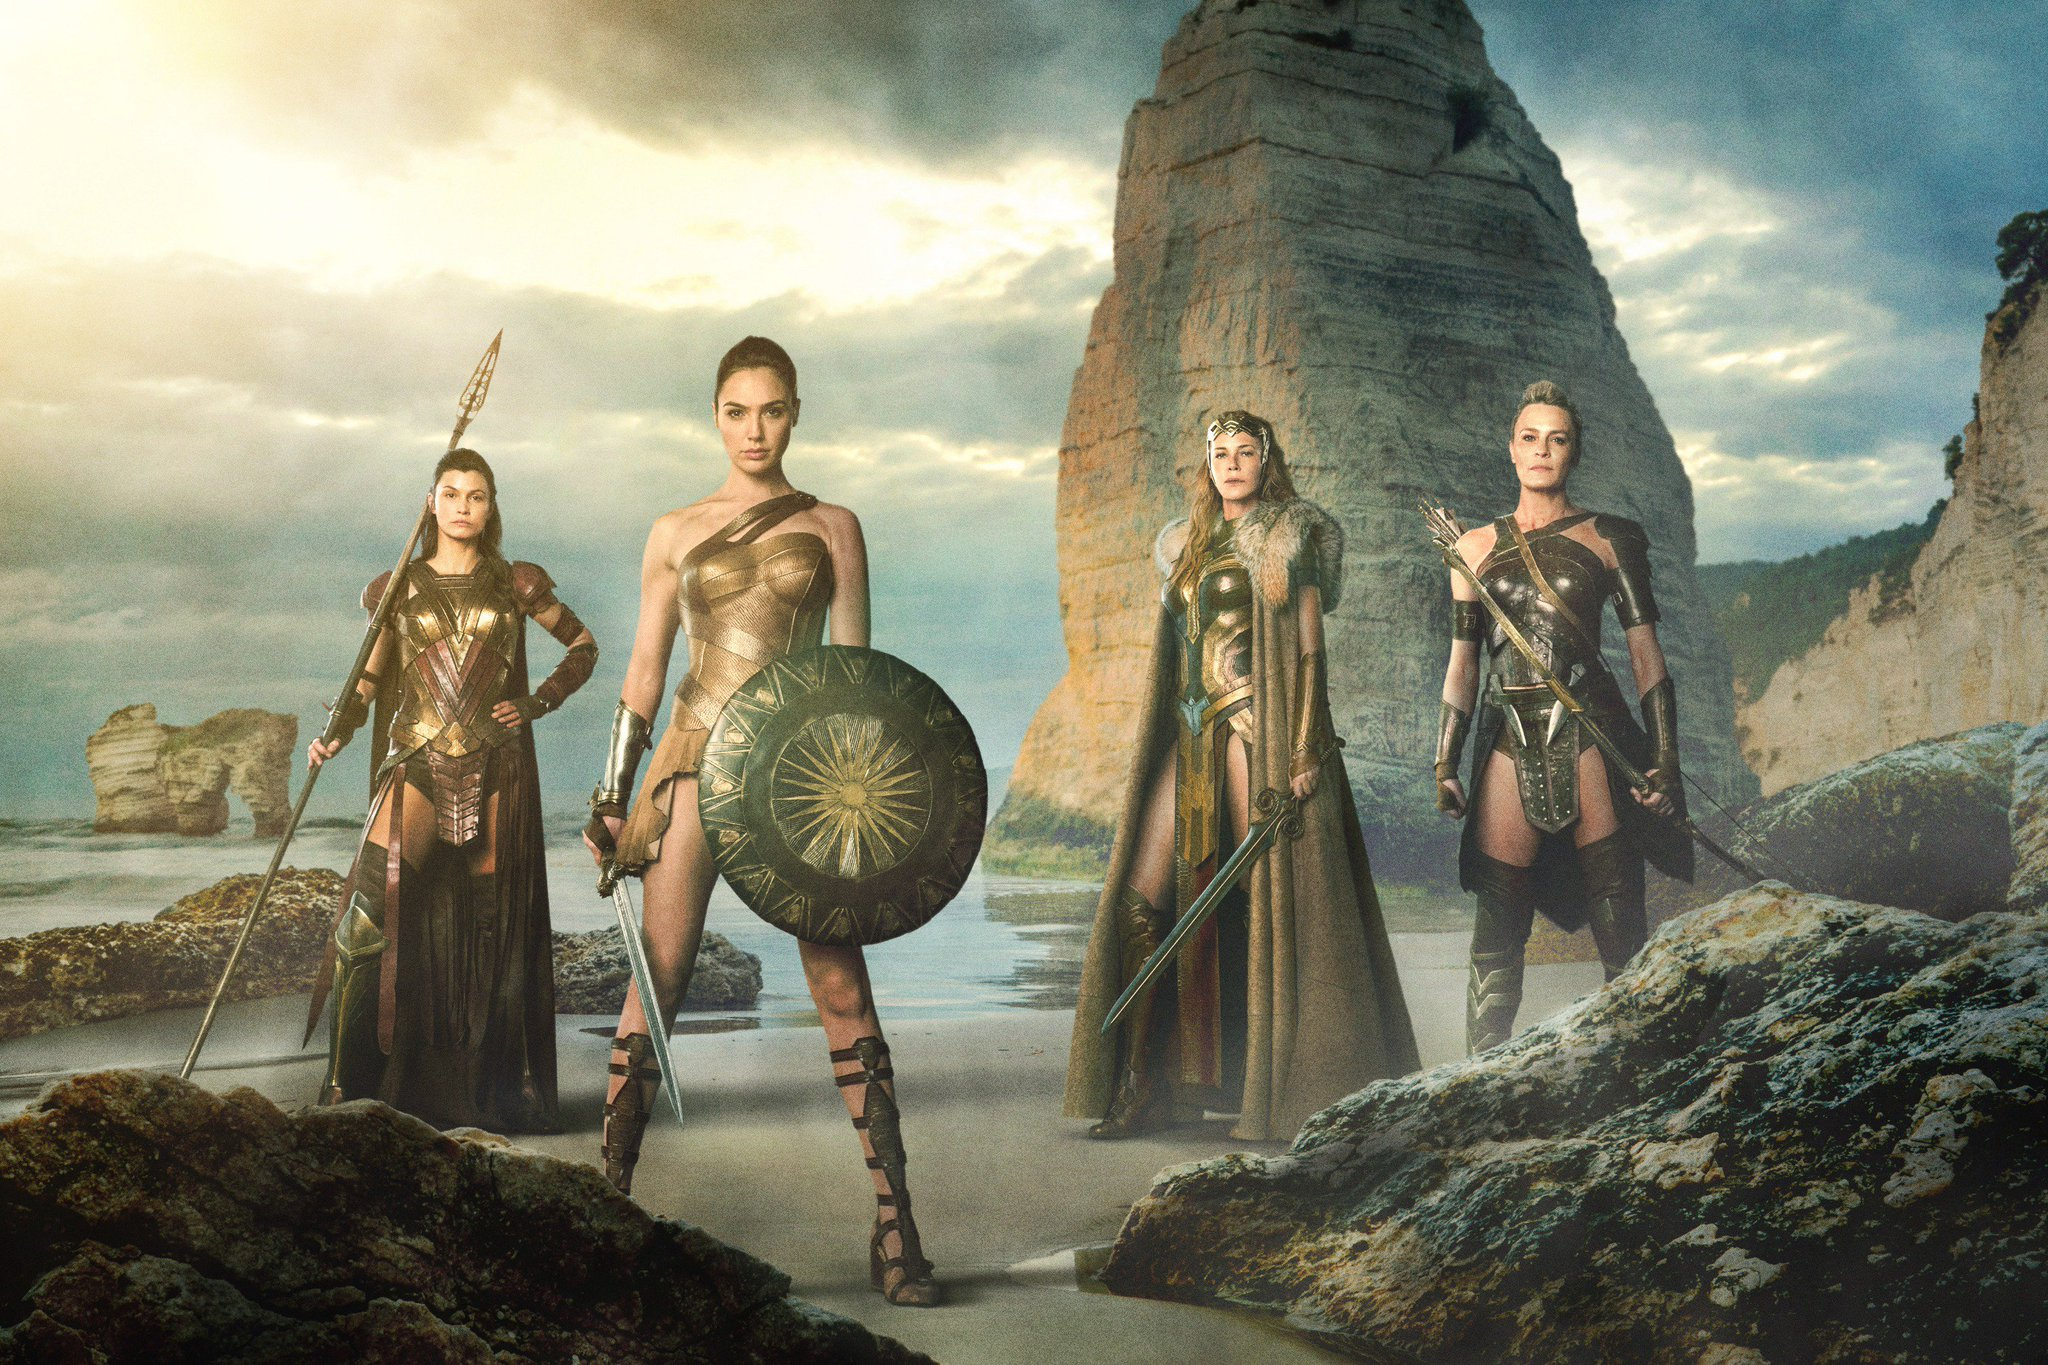 Wonder Woman Release Date Moved Up, Jungle Book Delayed 2